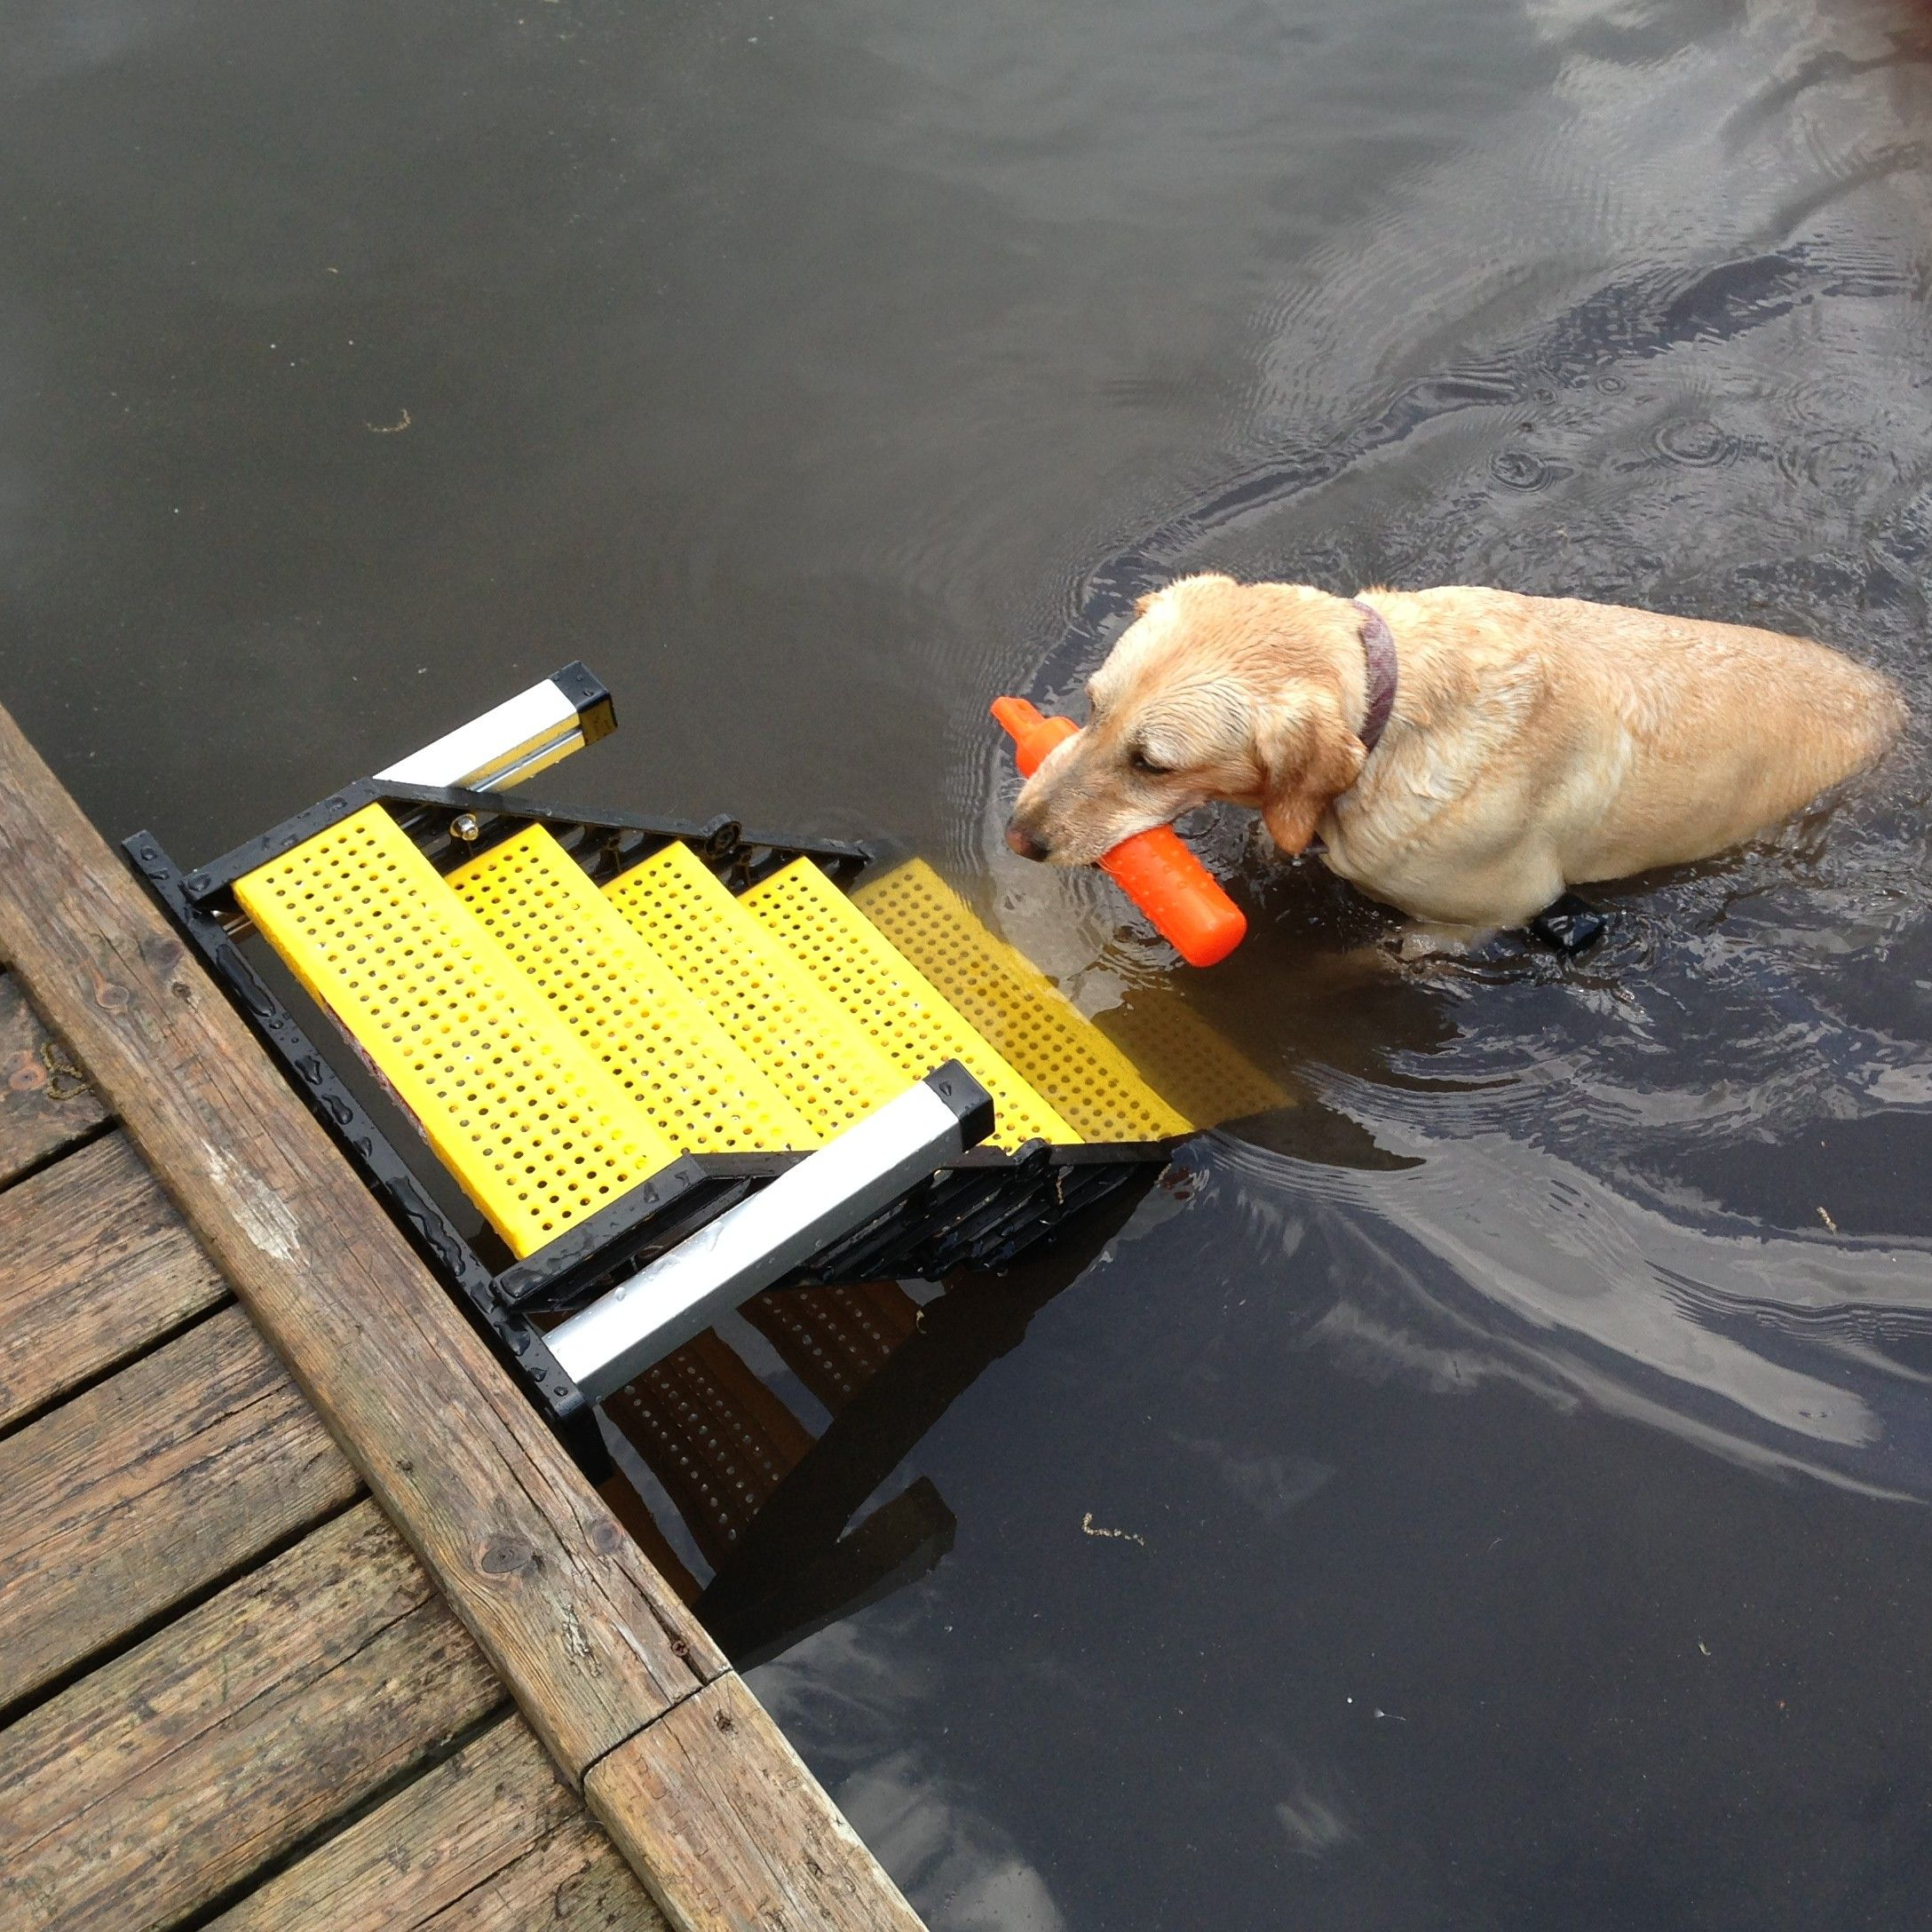 Sadie with WAG Boarding Steps™ Model DM-12 | WAG Users Group